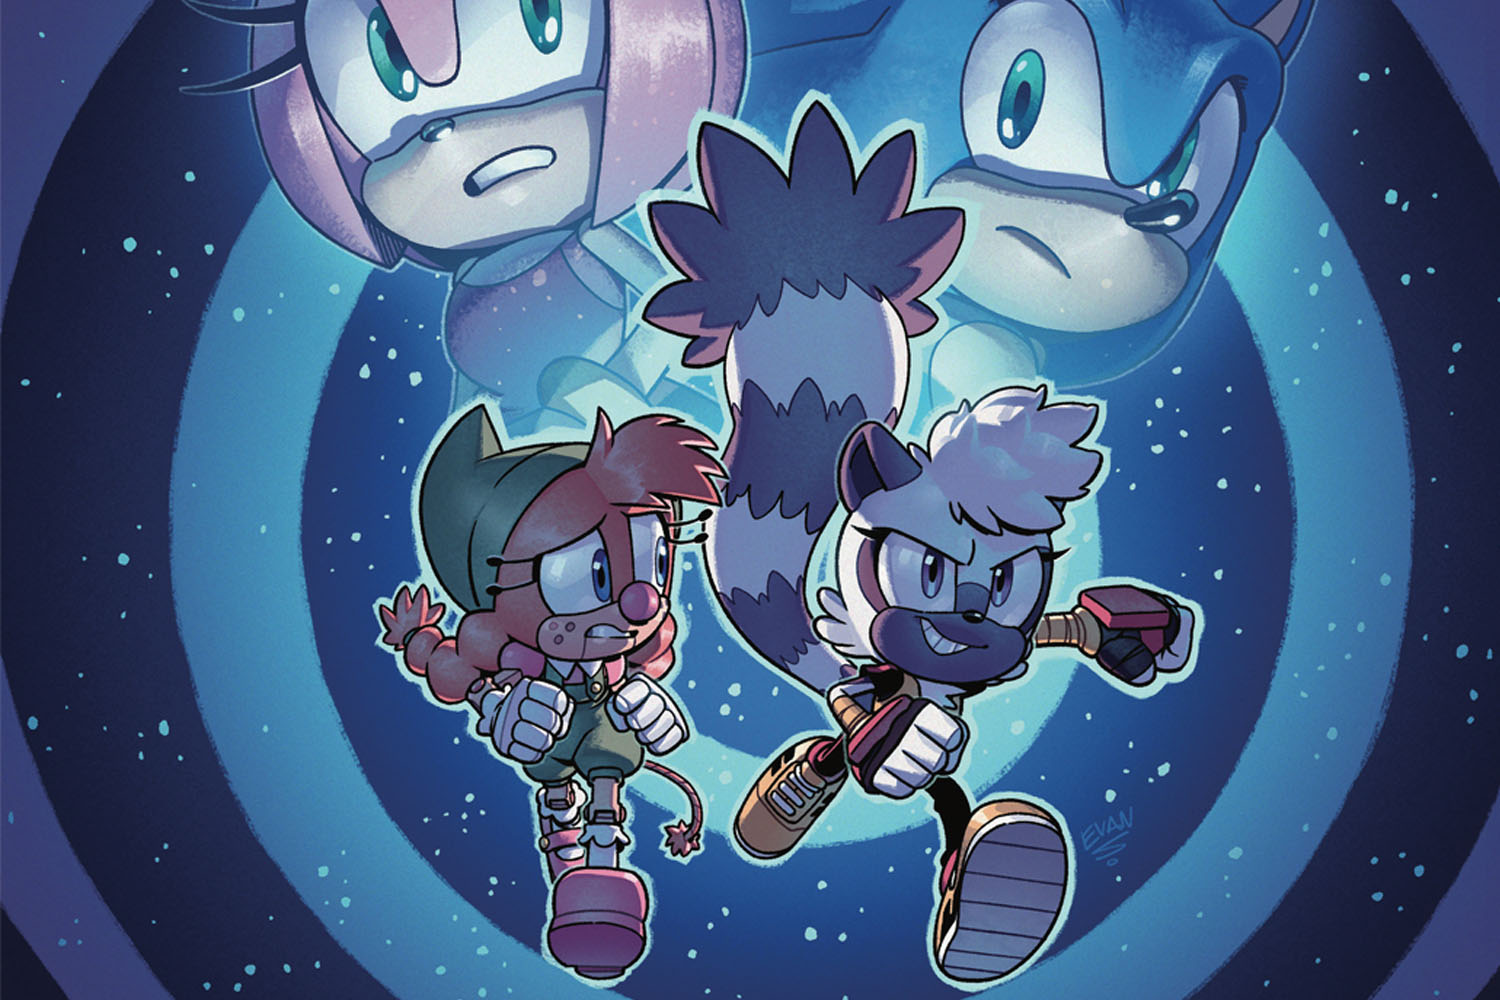 'Sonic the Hedgehog' #37 review